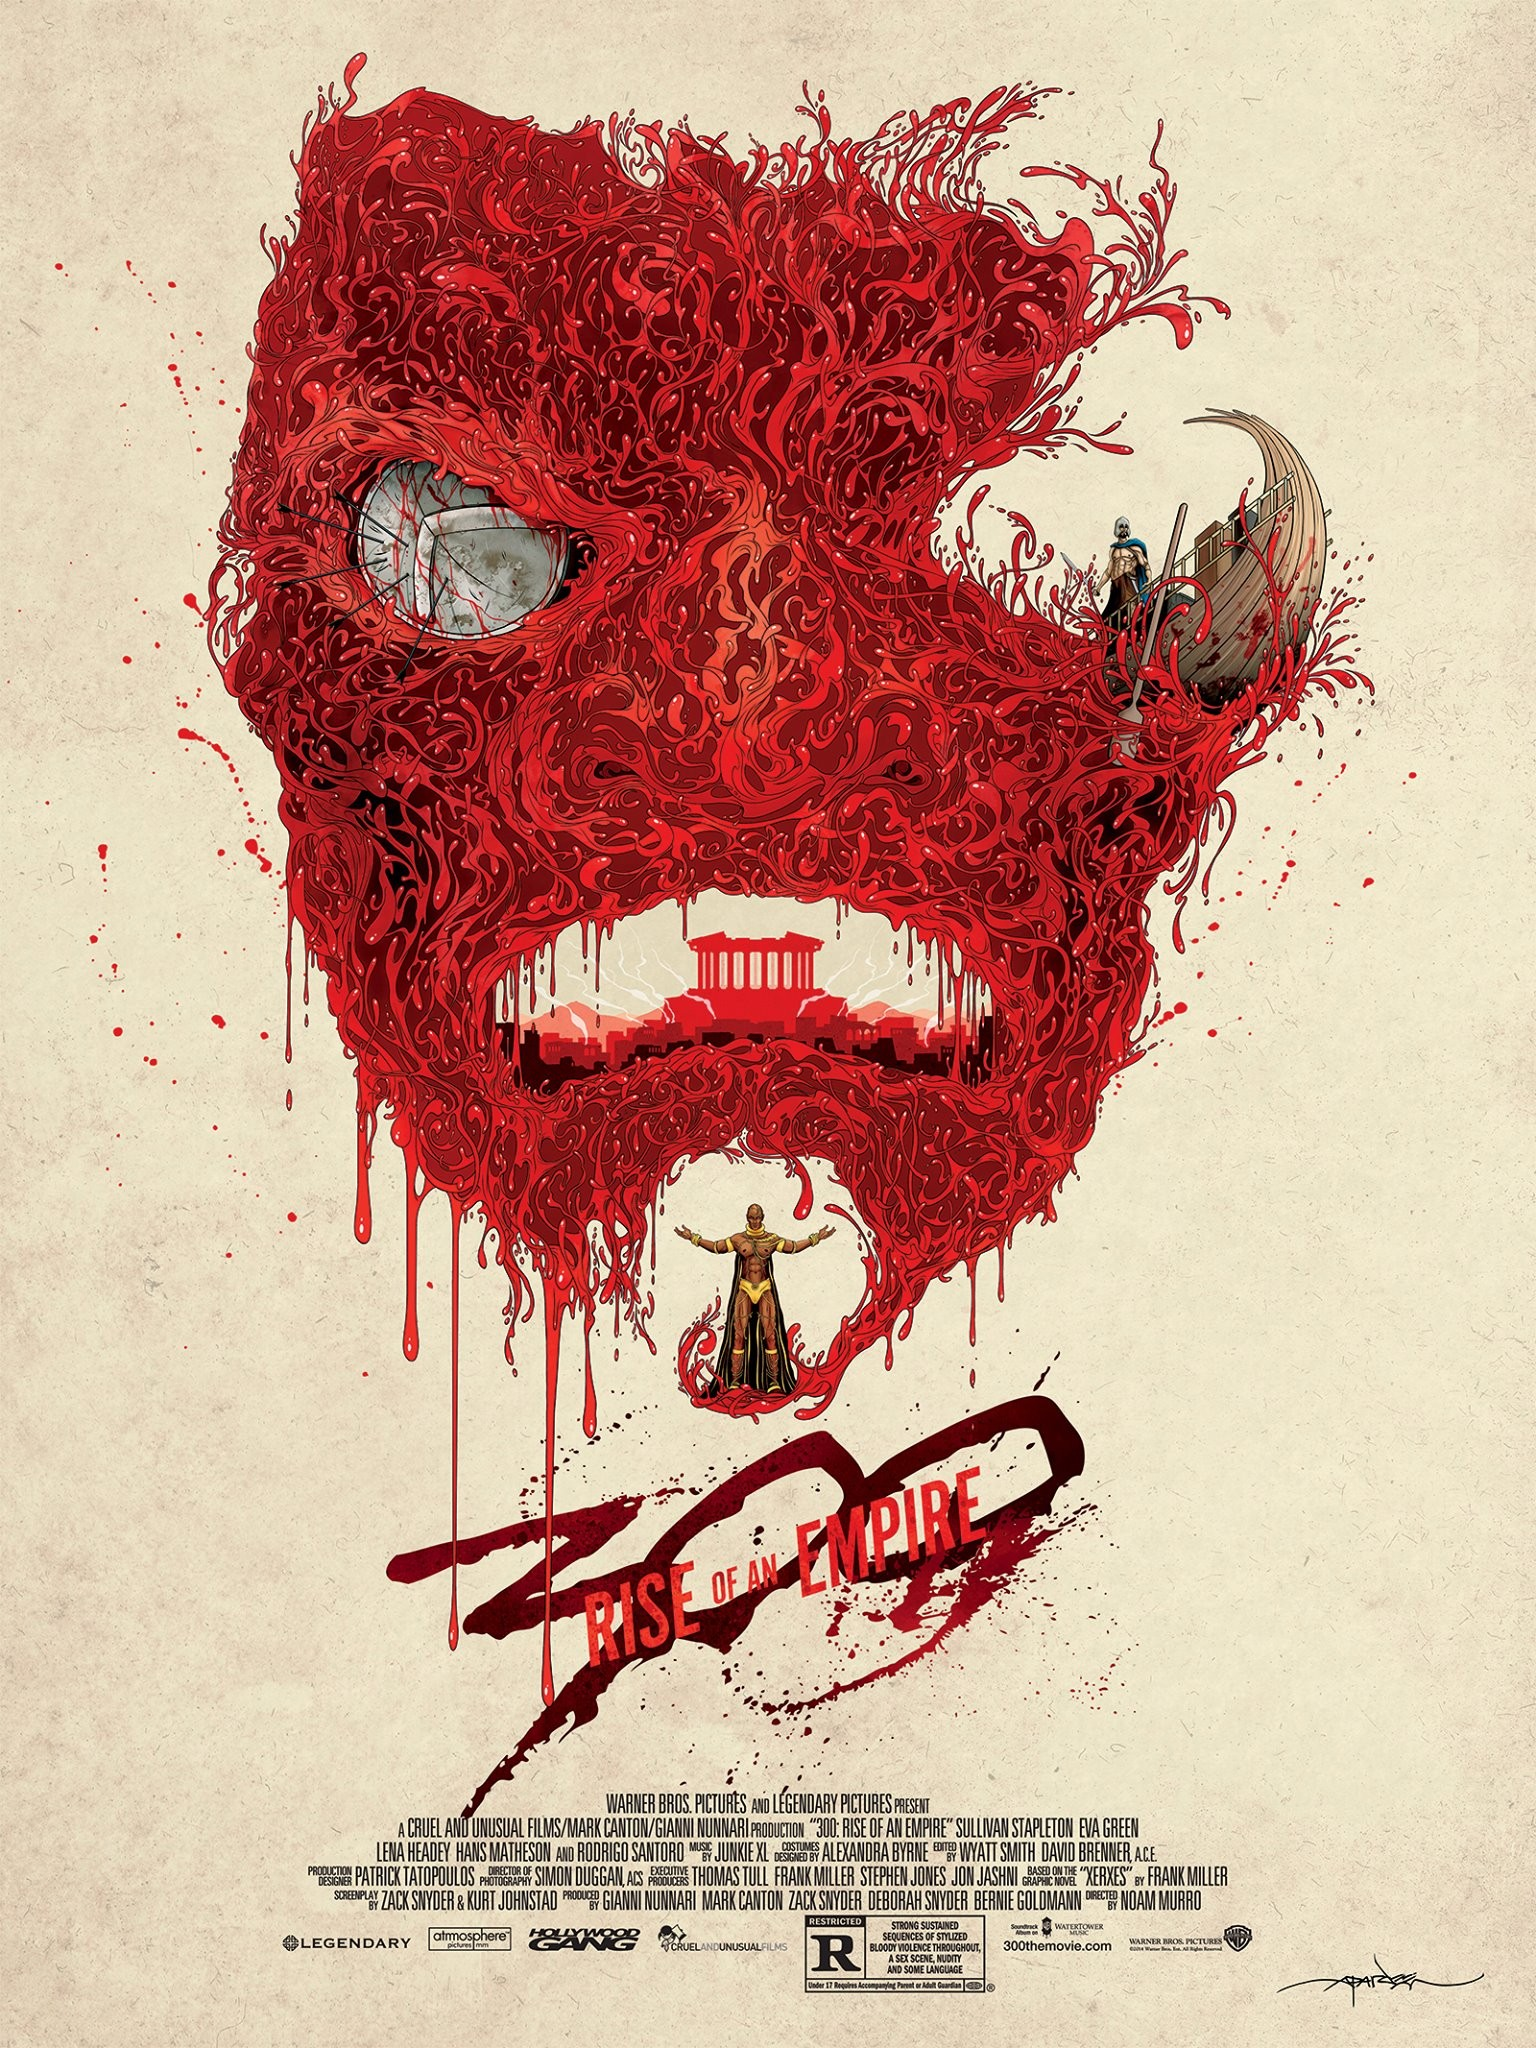 300 Rise of an Empire-Official Poster Banner PROMO POSTER XXLG-28JANEIRO2014